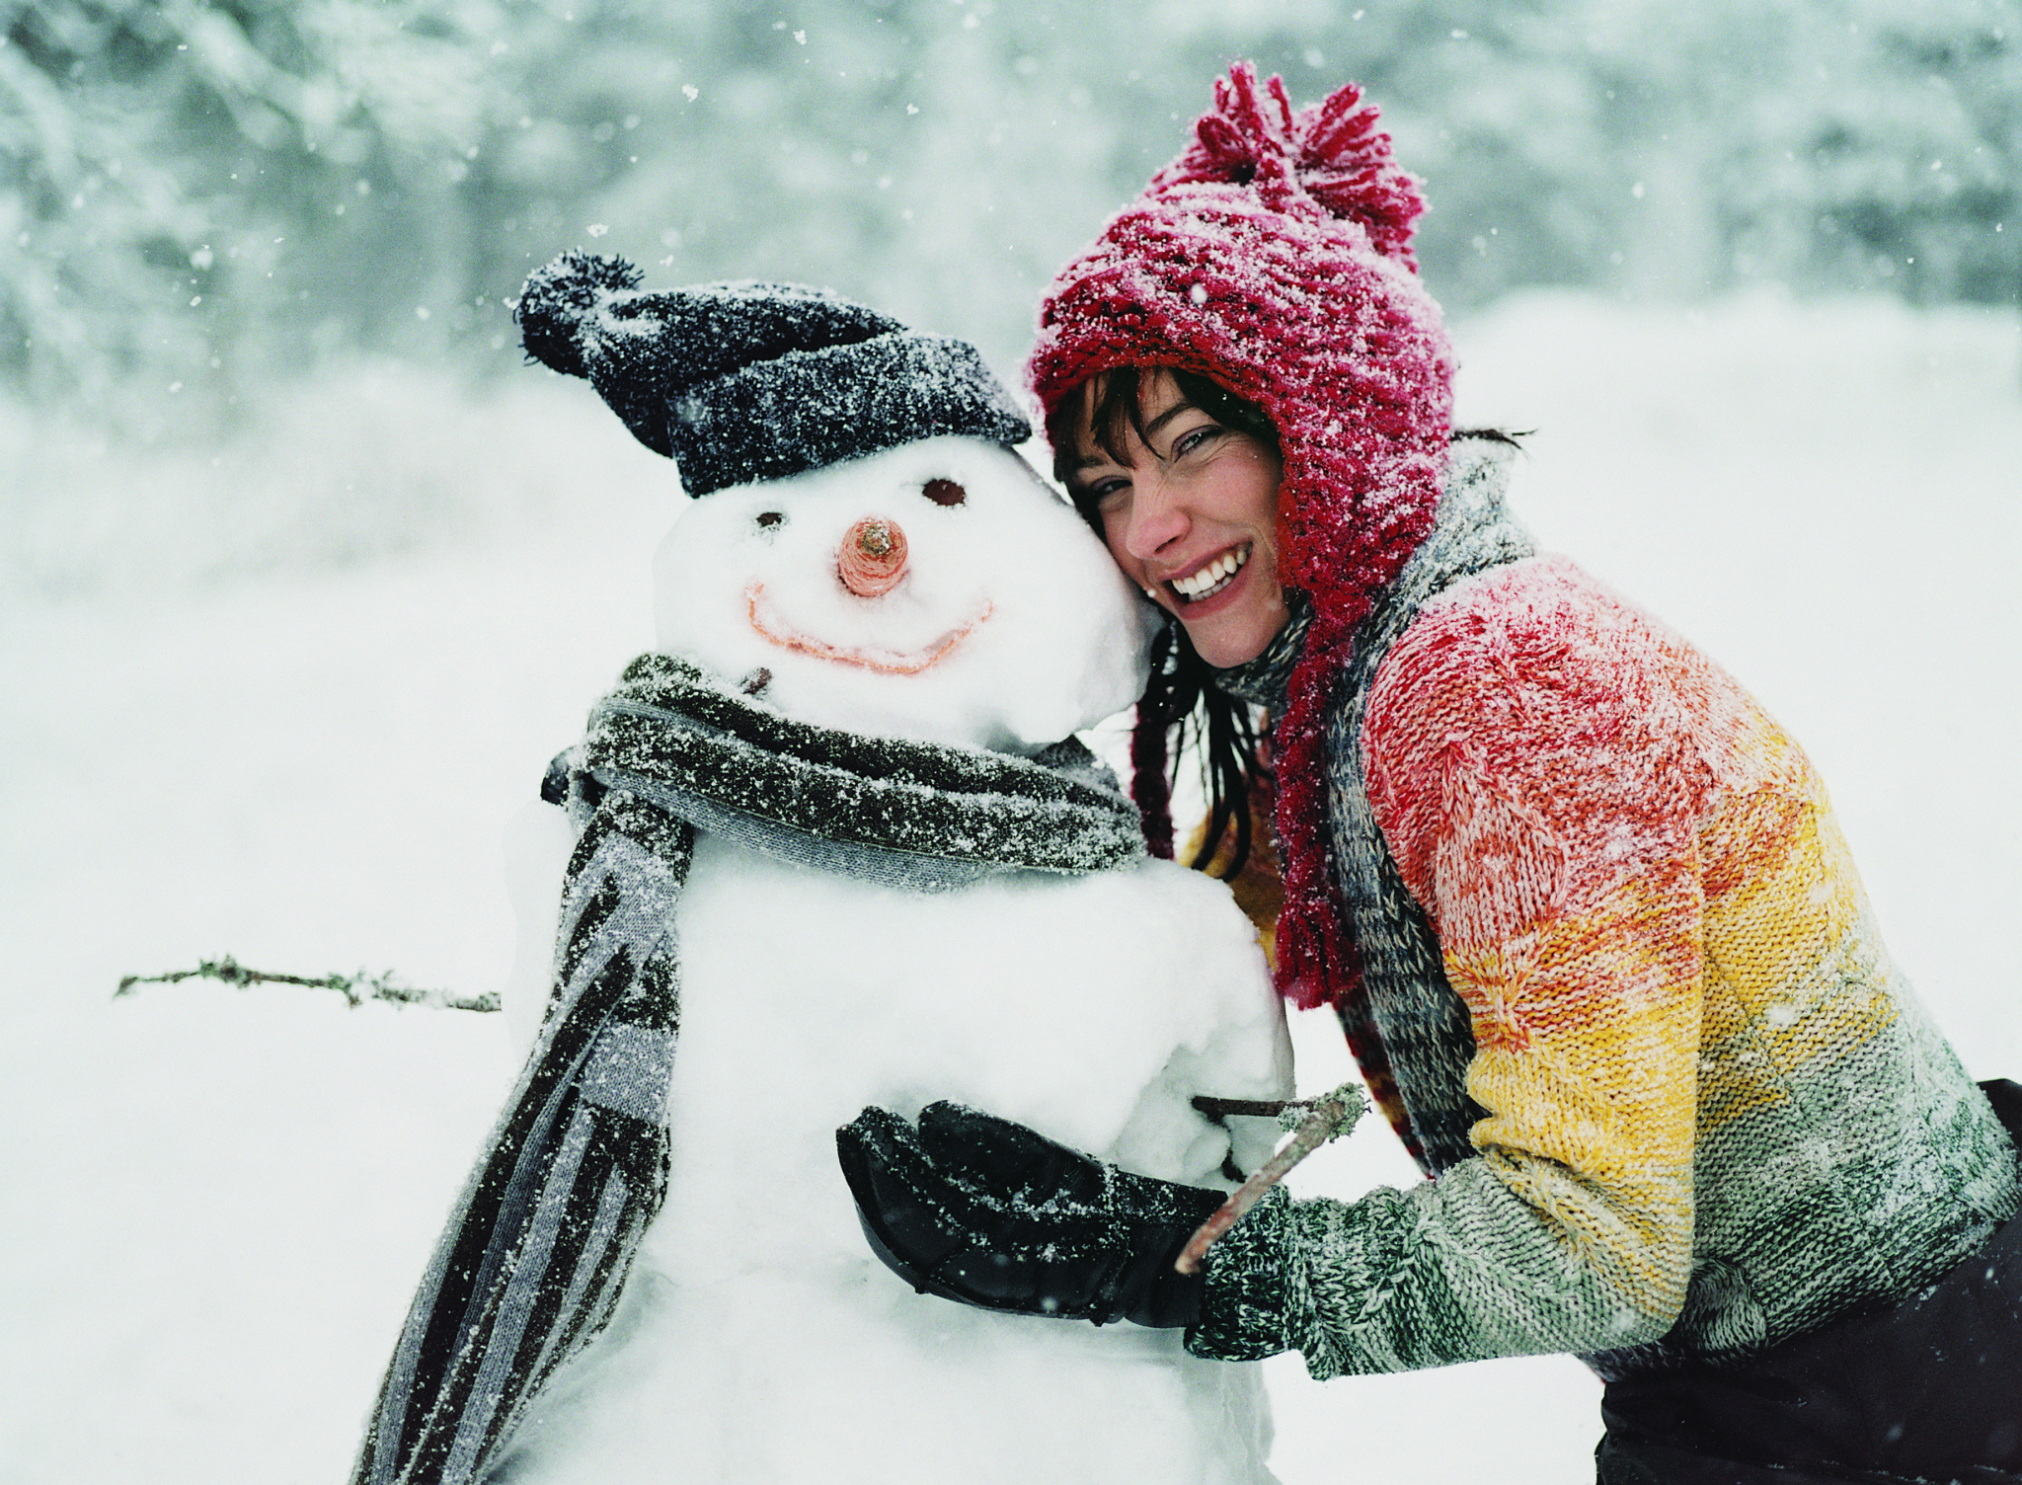 Portrait of a Young Woman in the Snow Next to a Snowman